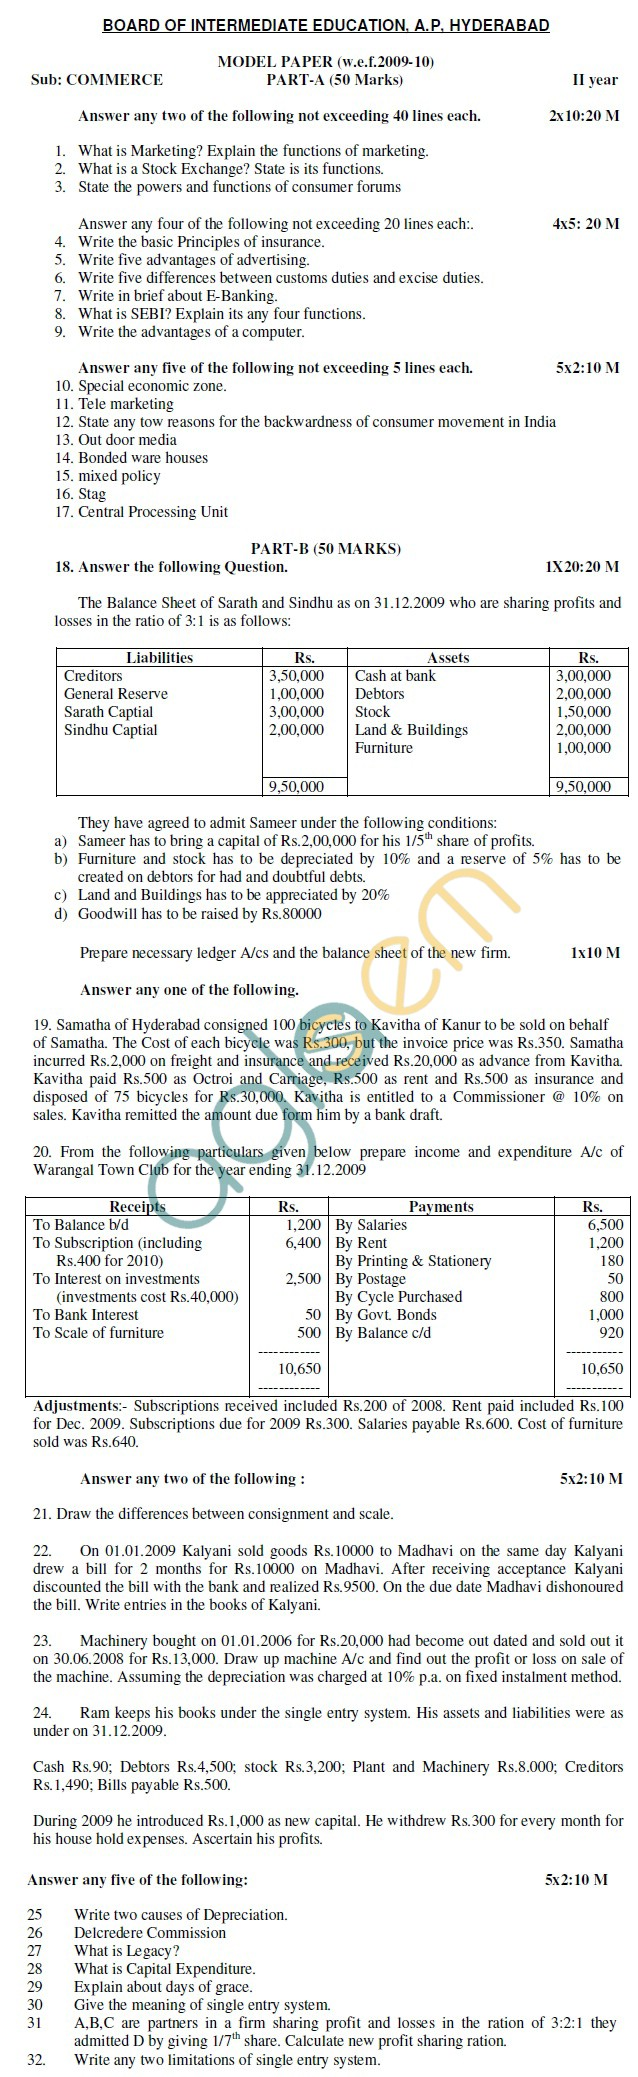 AP Board Intermediate II Year Commerce Model Question Paper